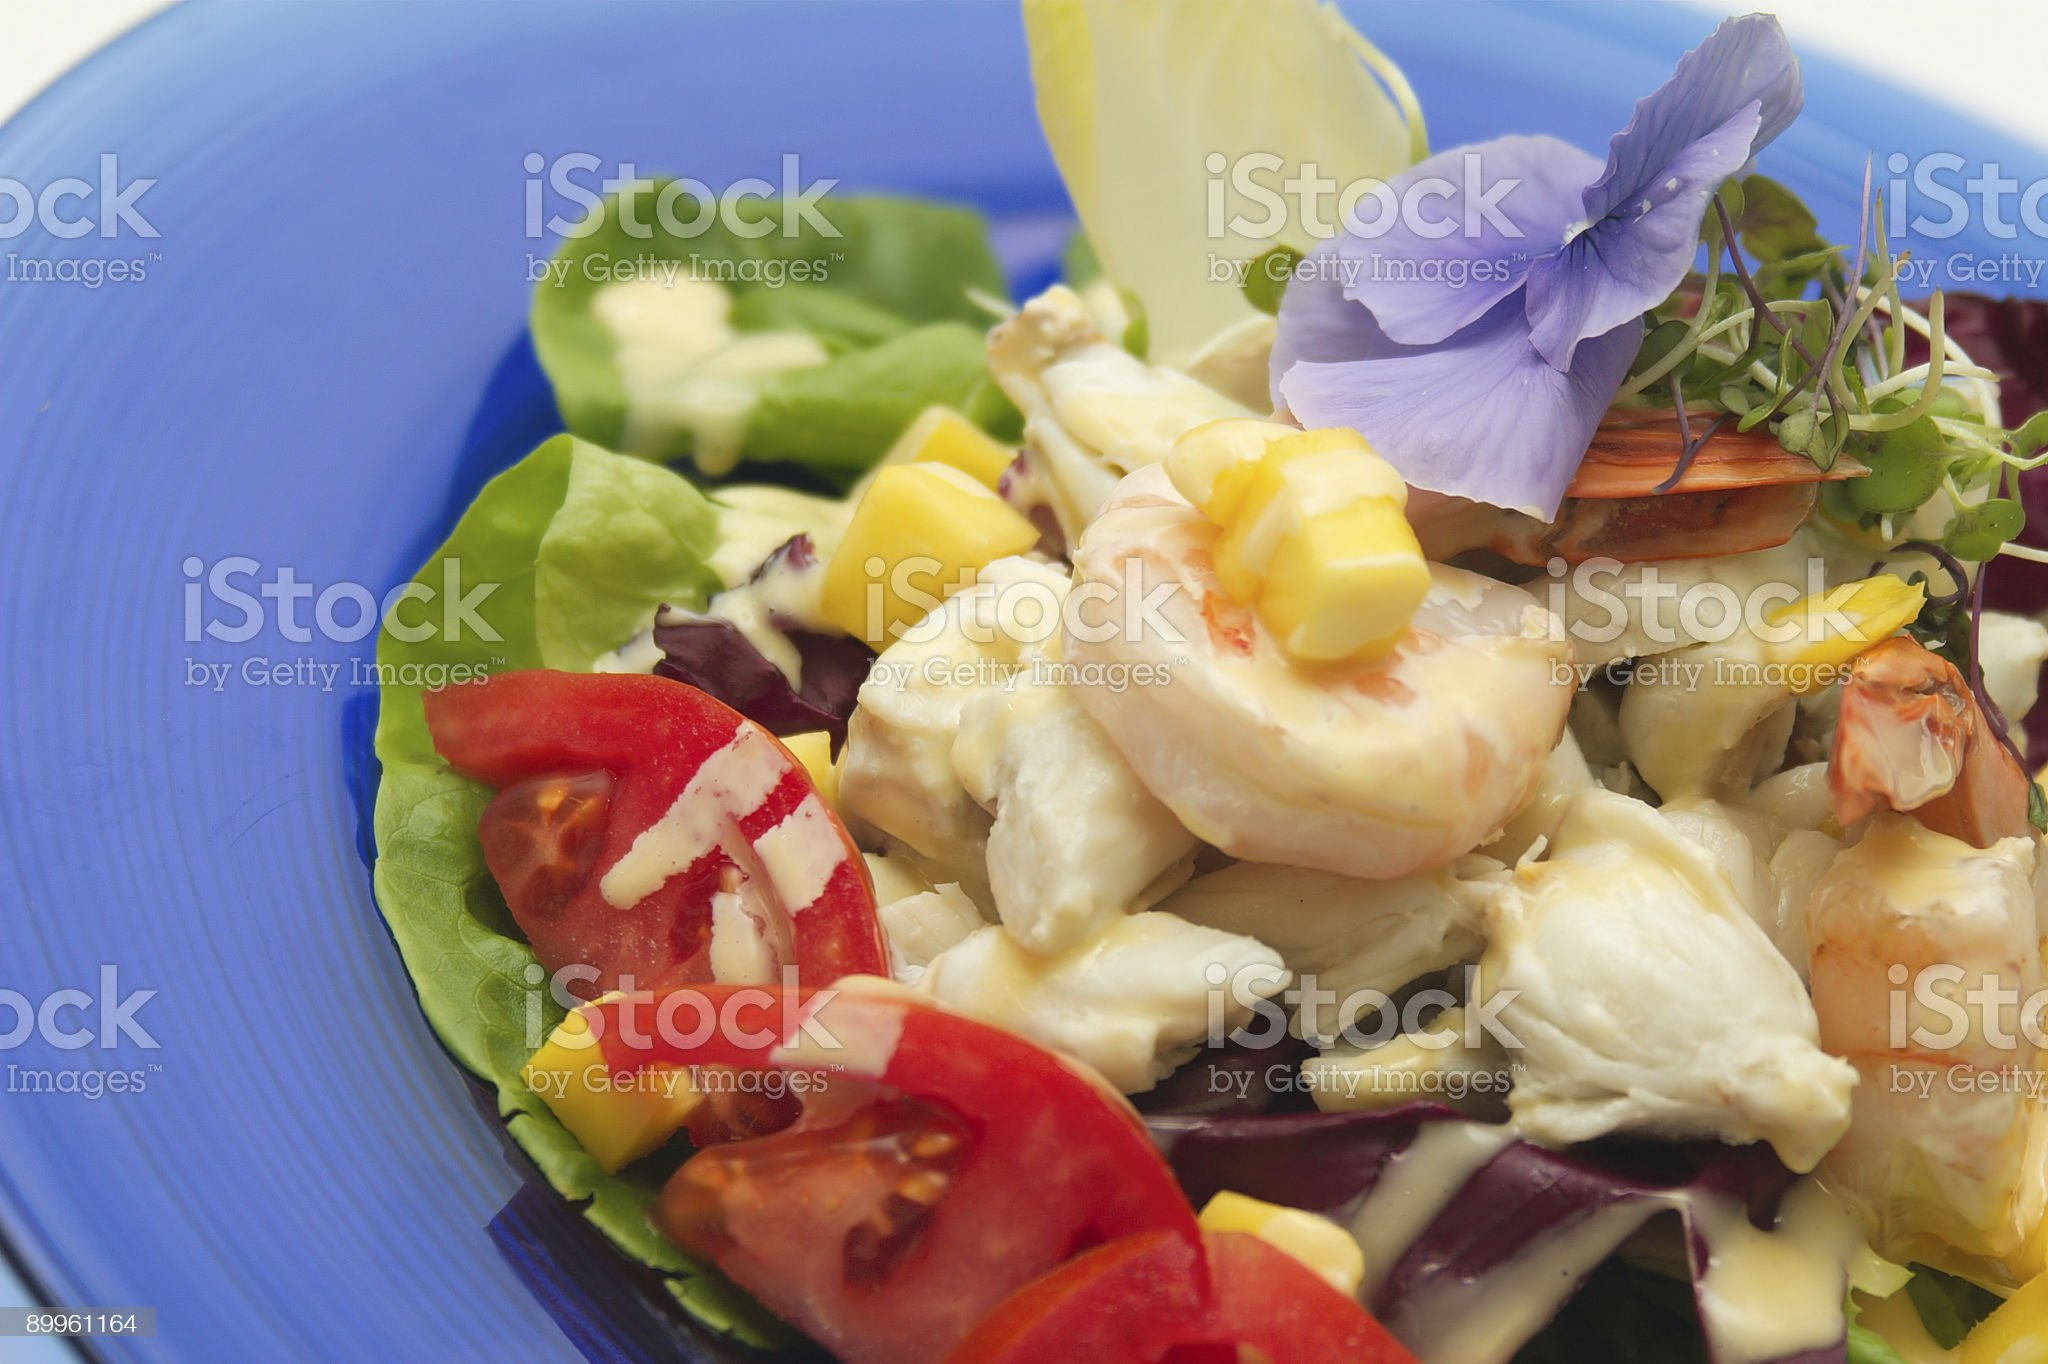 Shrimp and Crab Salad-Details royalty-free stock photo